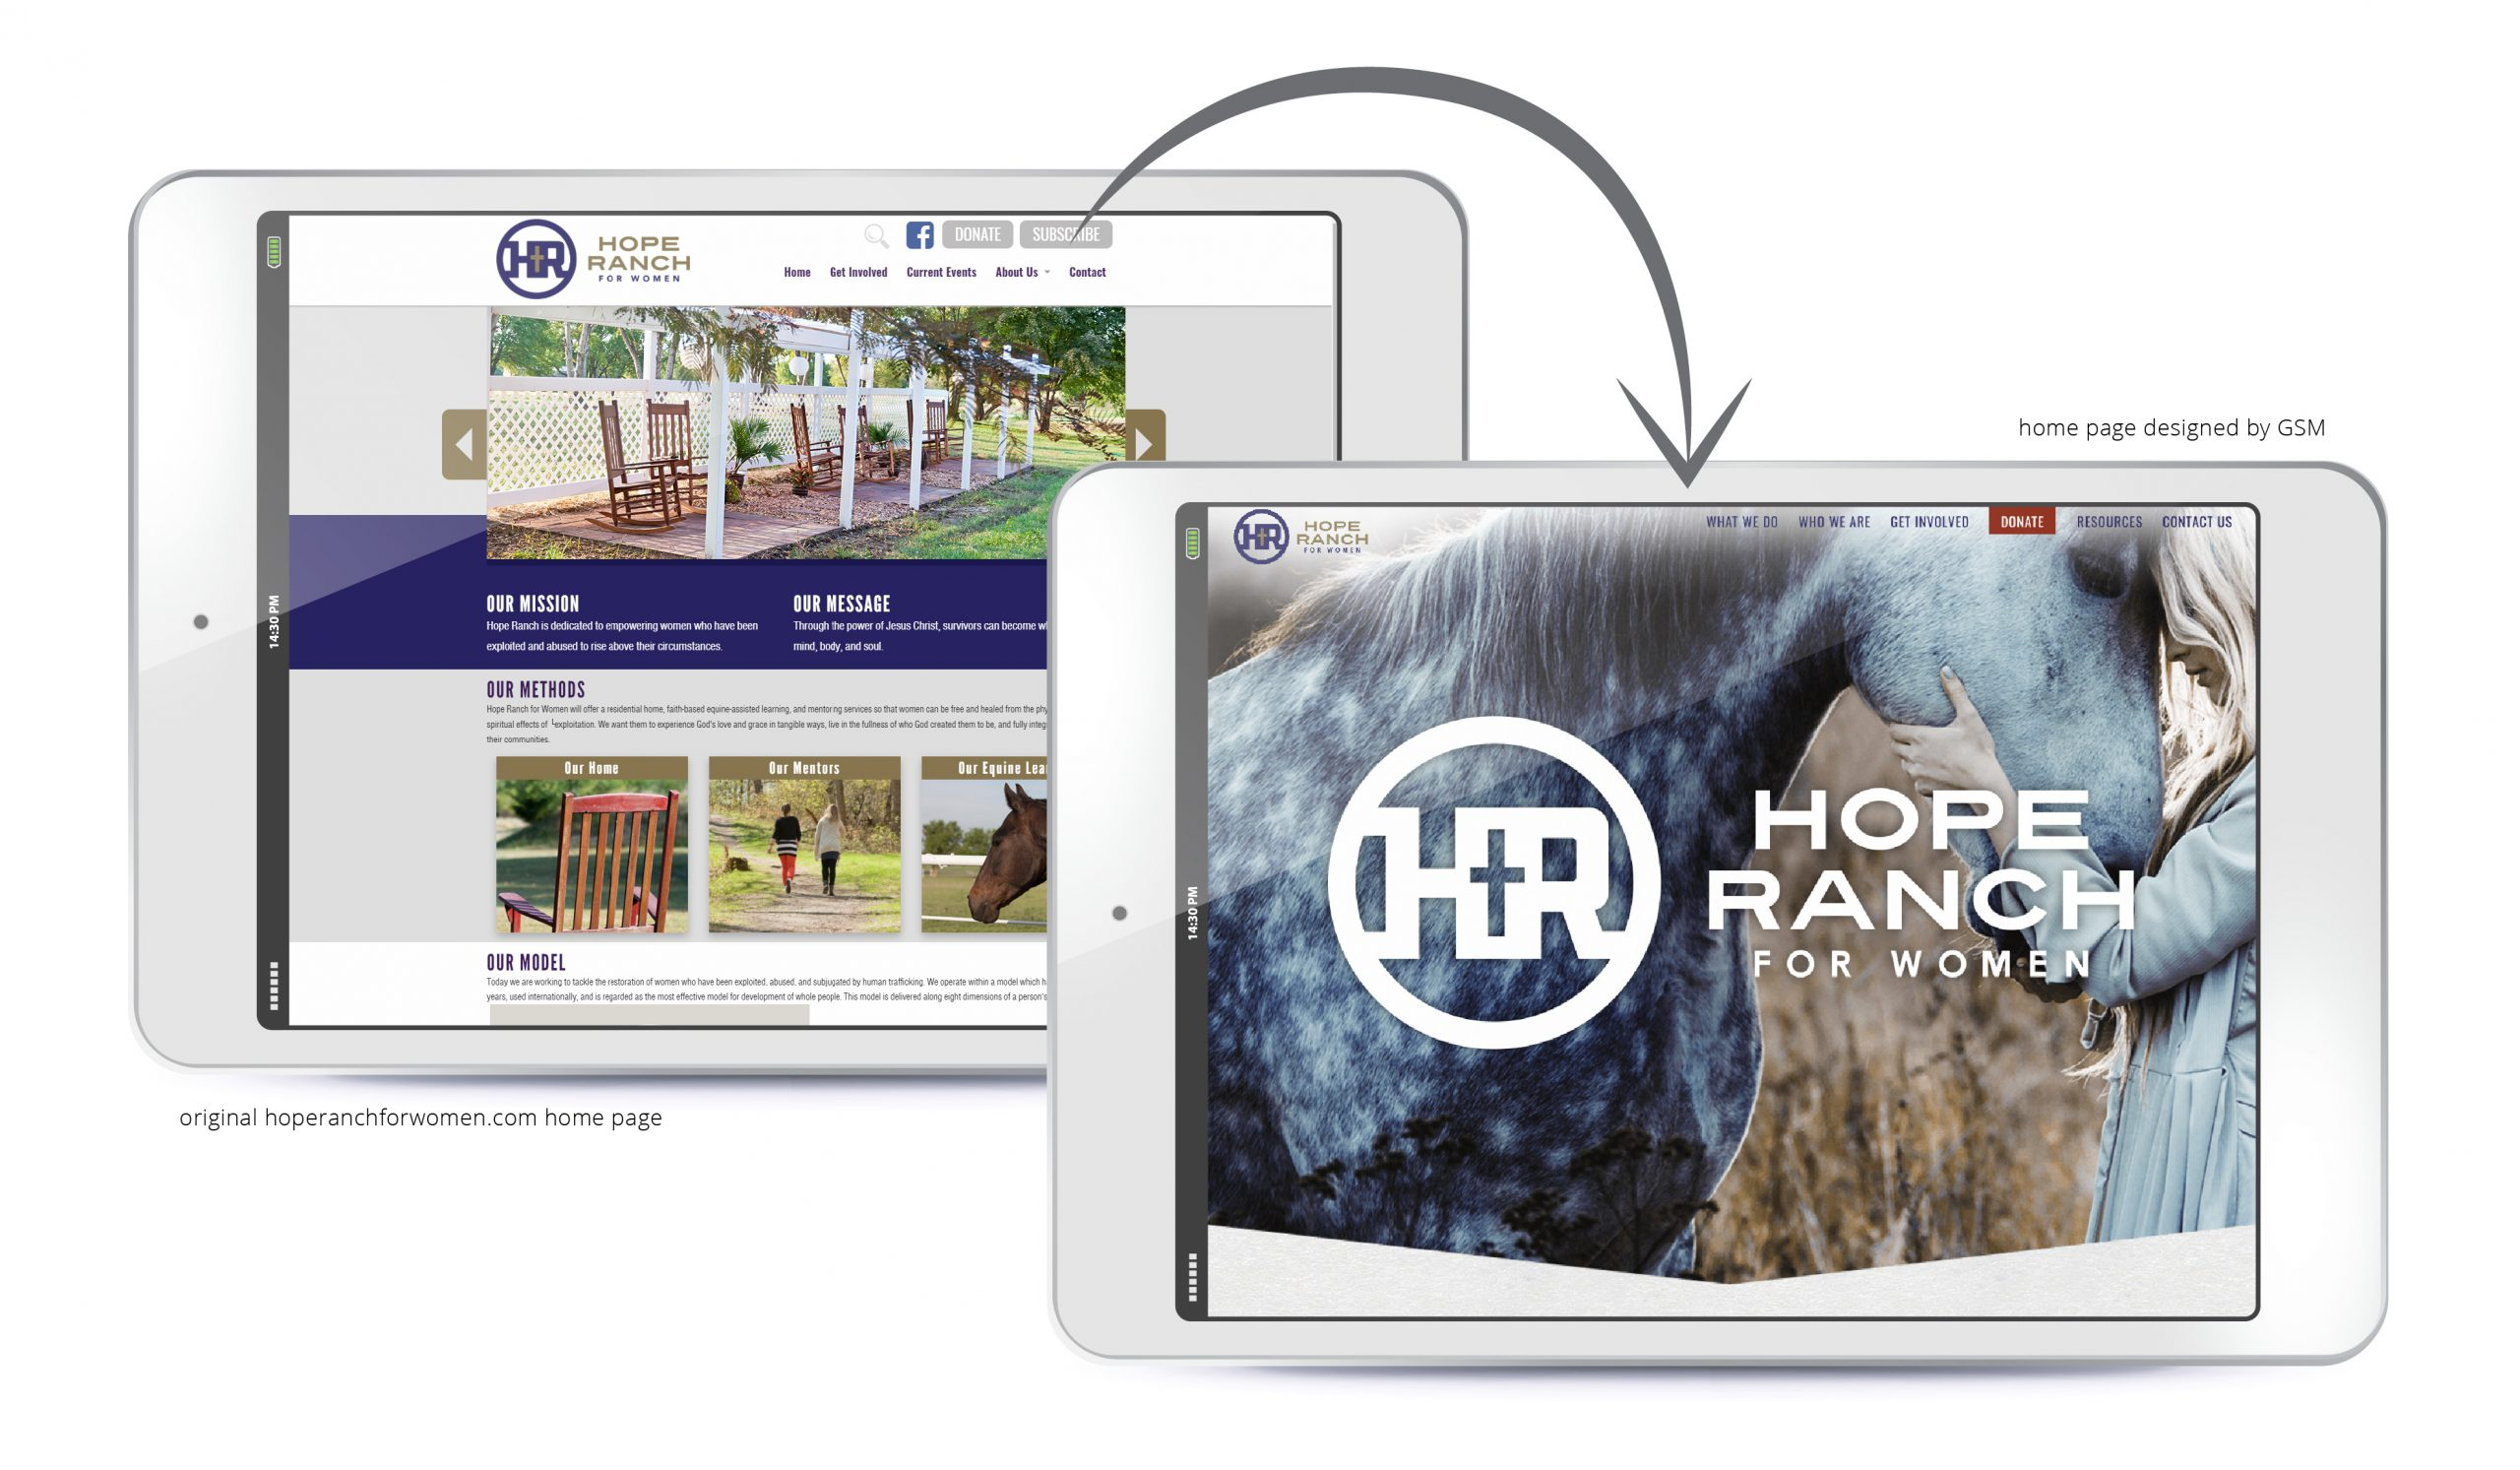 Before-and-after Hope Ranch website redesign